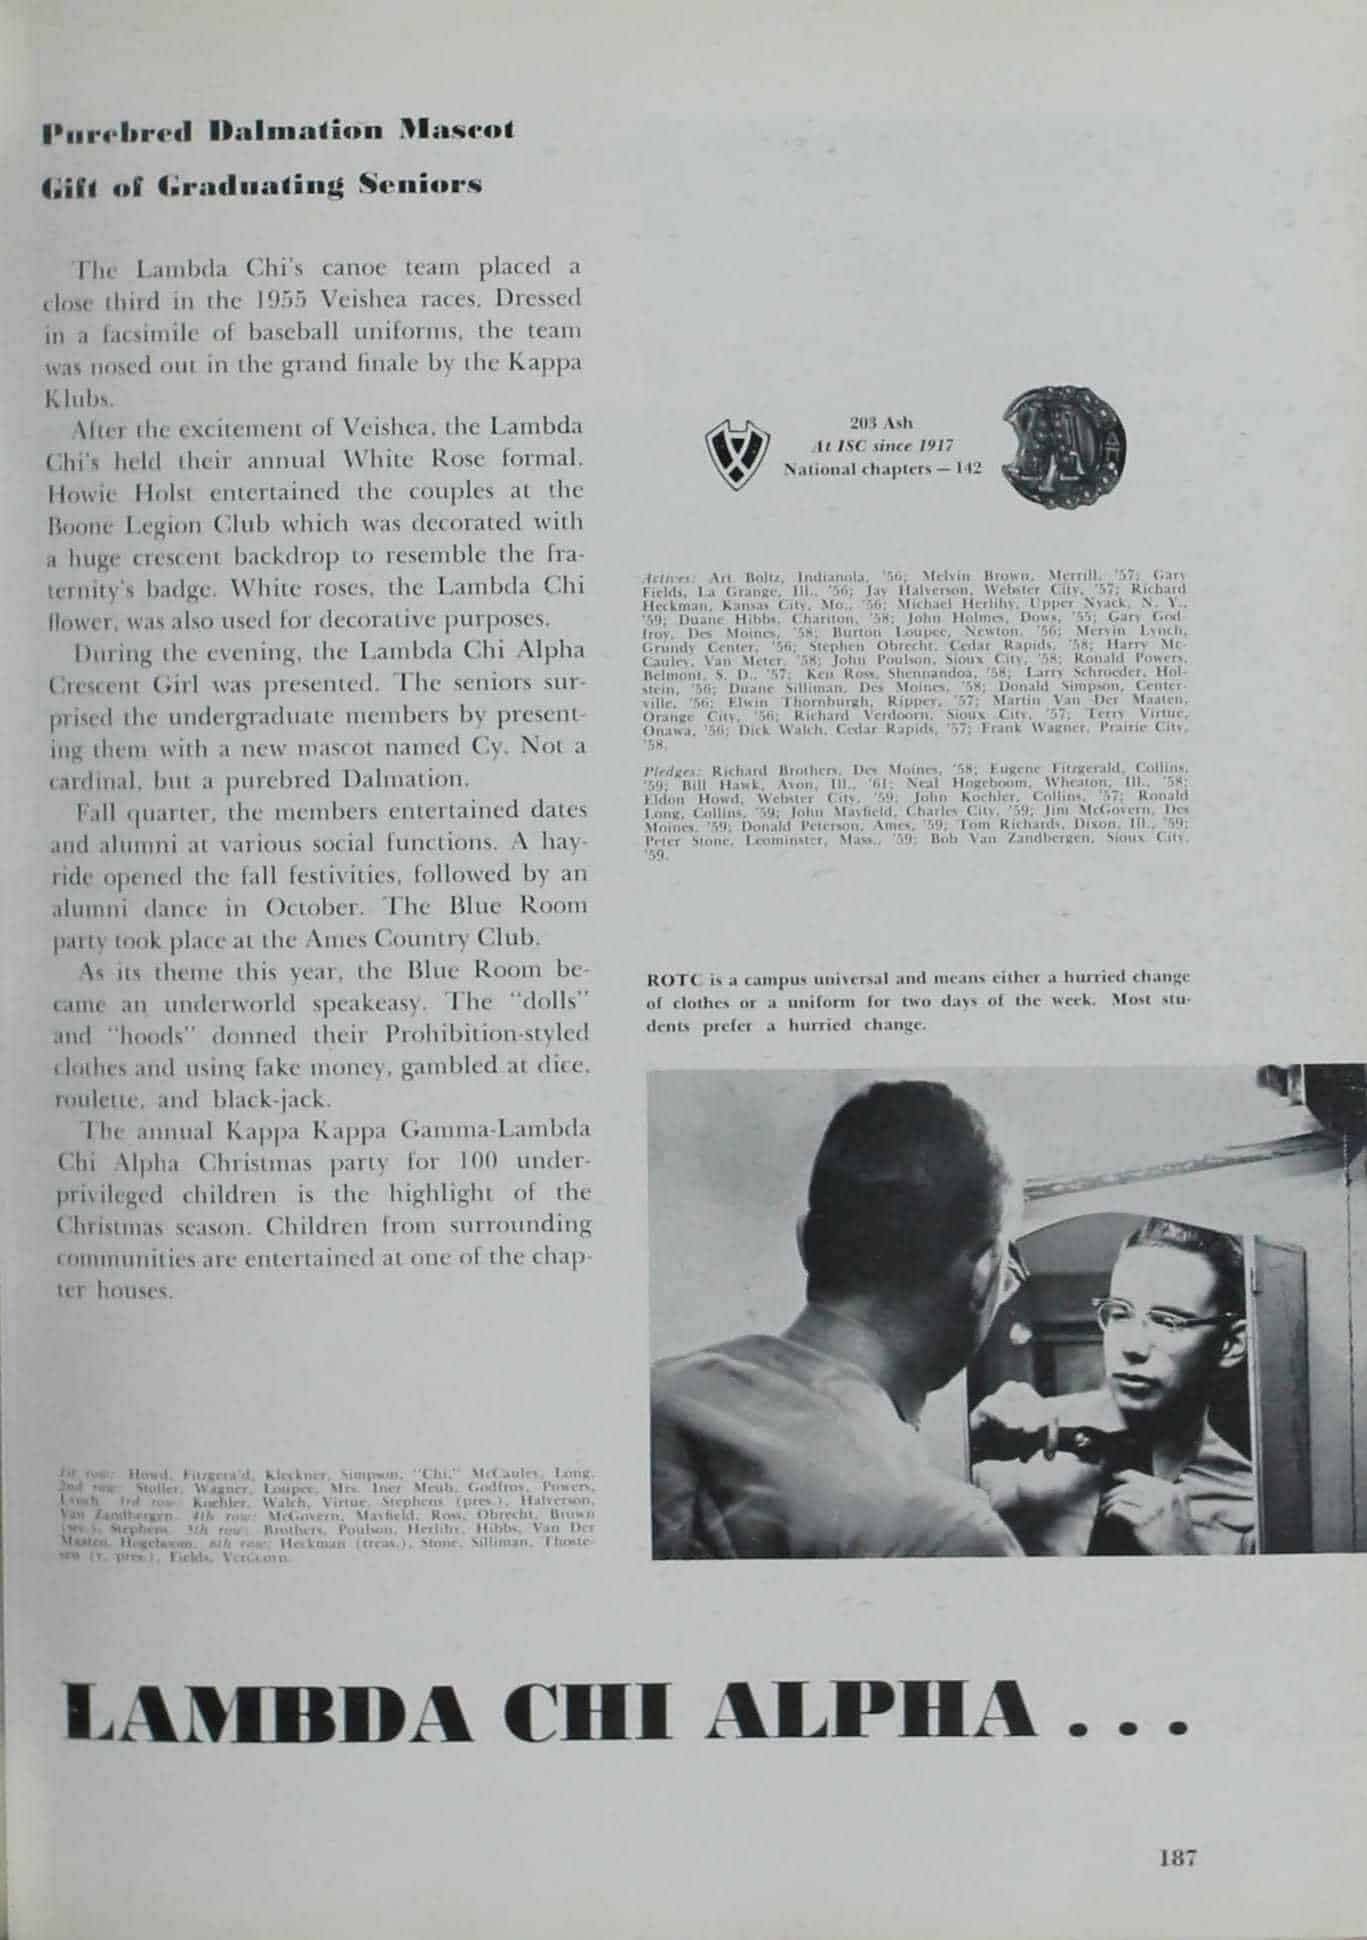 1956 Iowa State Yearbook p.1